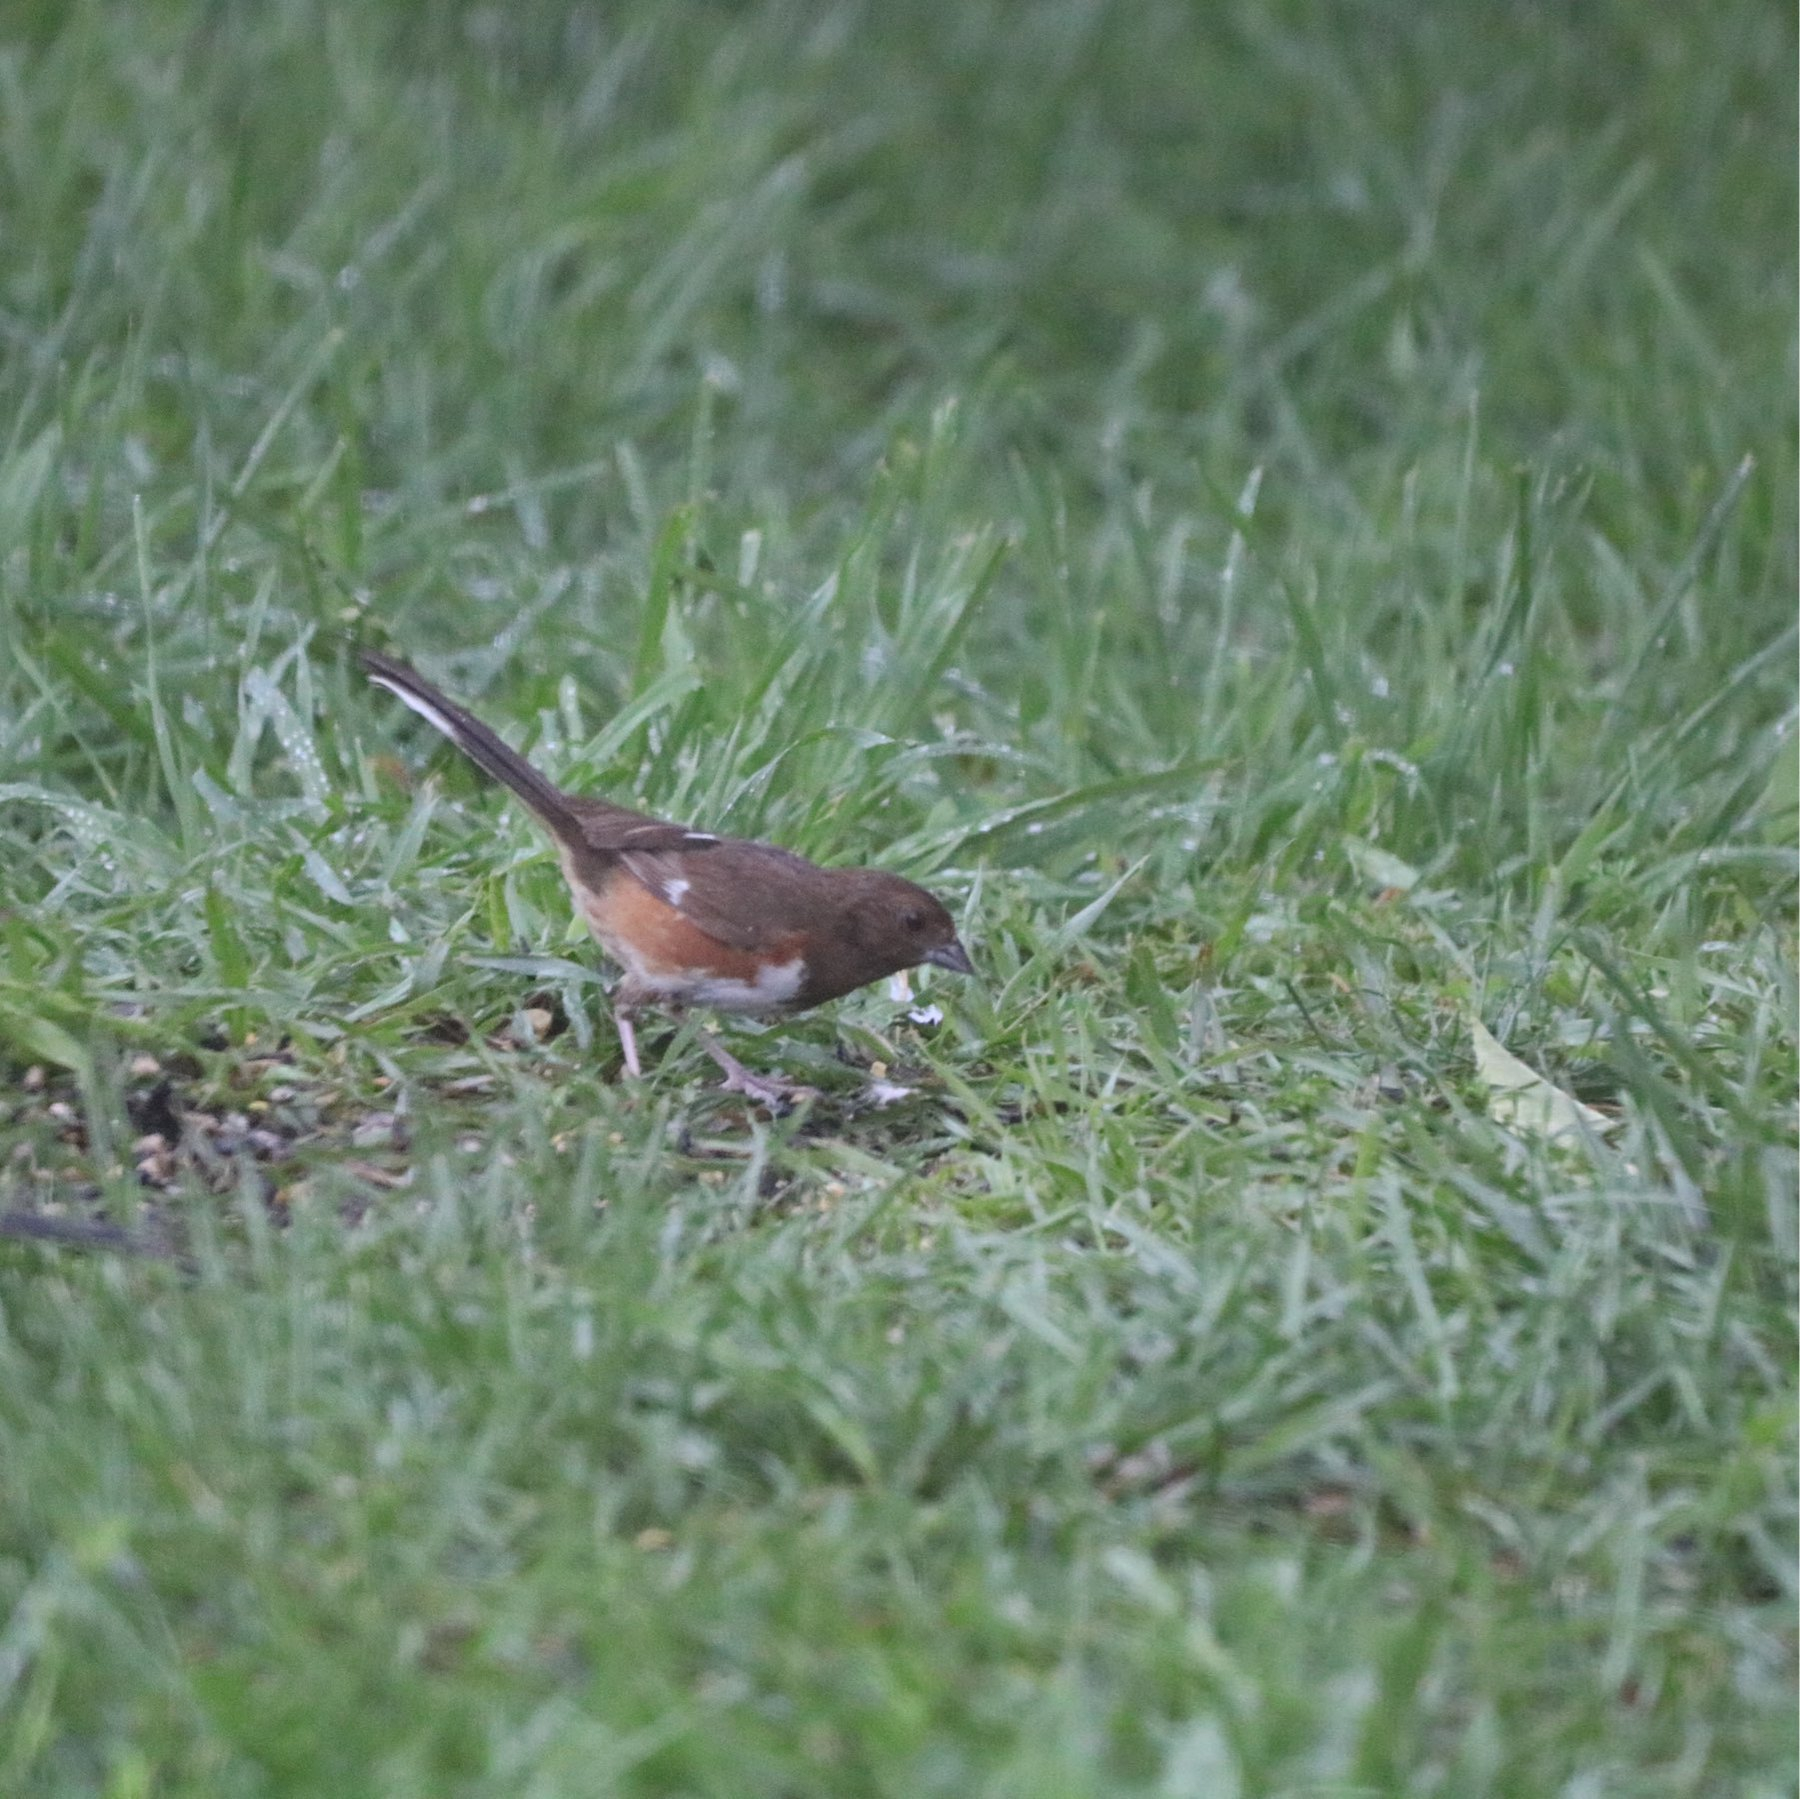 eastern towhee eating on the grass. she has a brown head, mottled brown and light breast with rusty sides and white stripes here and there